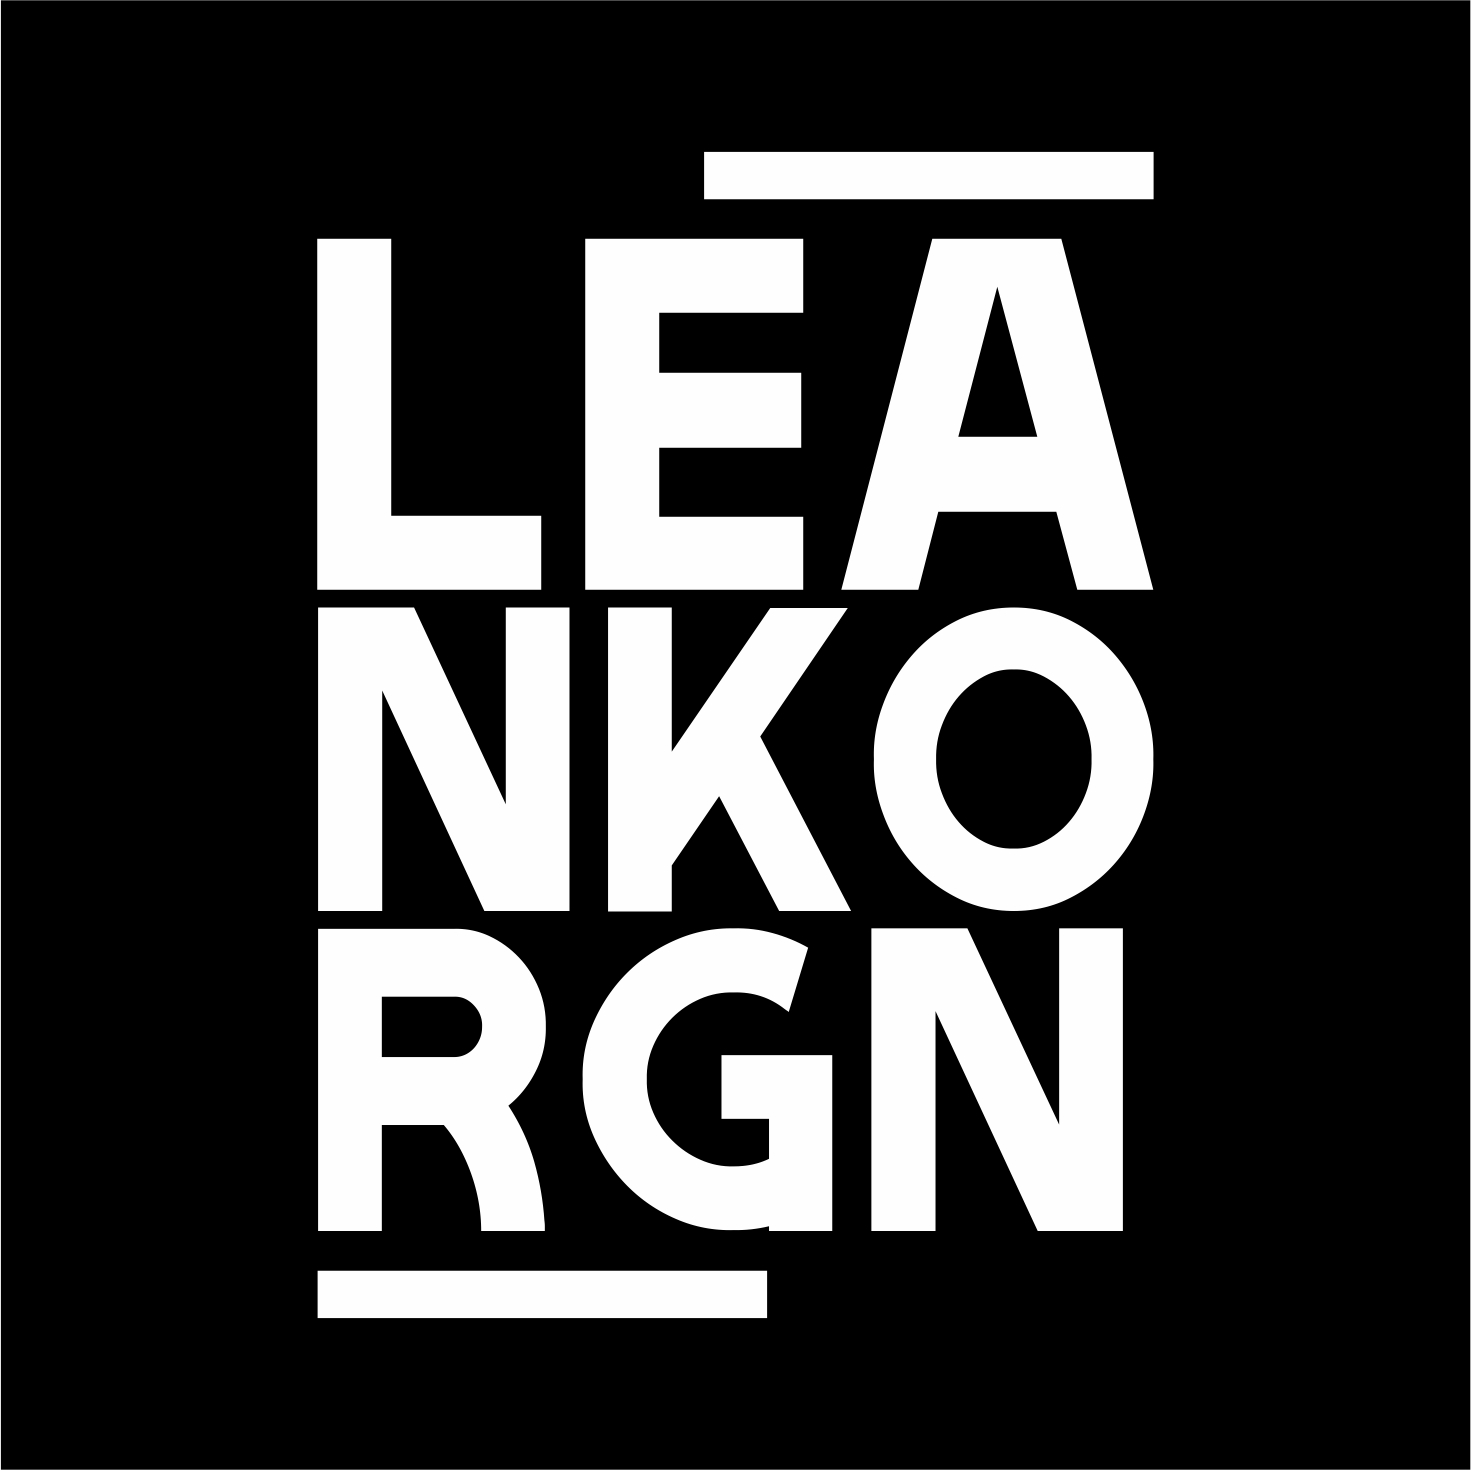 leankorgn